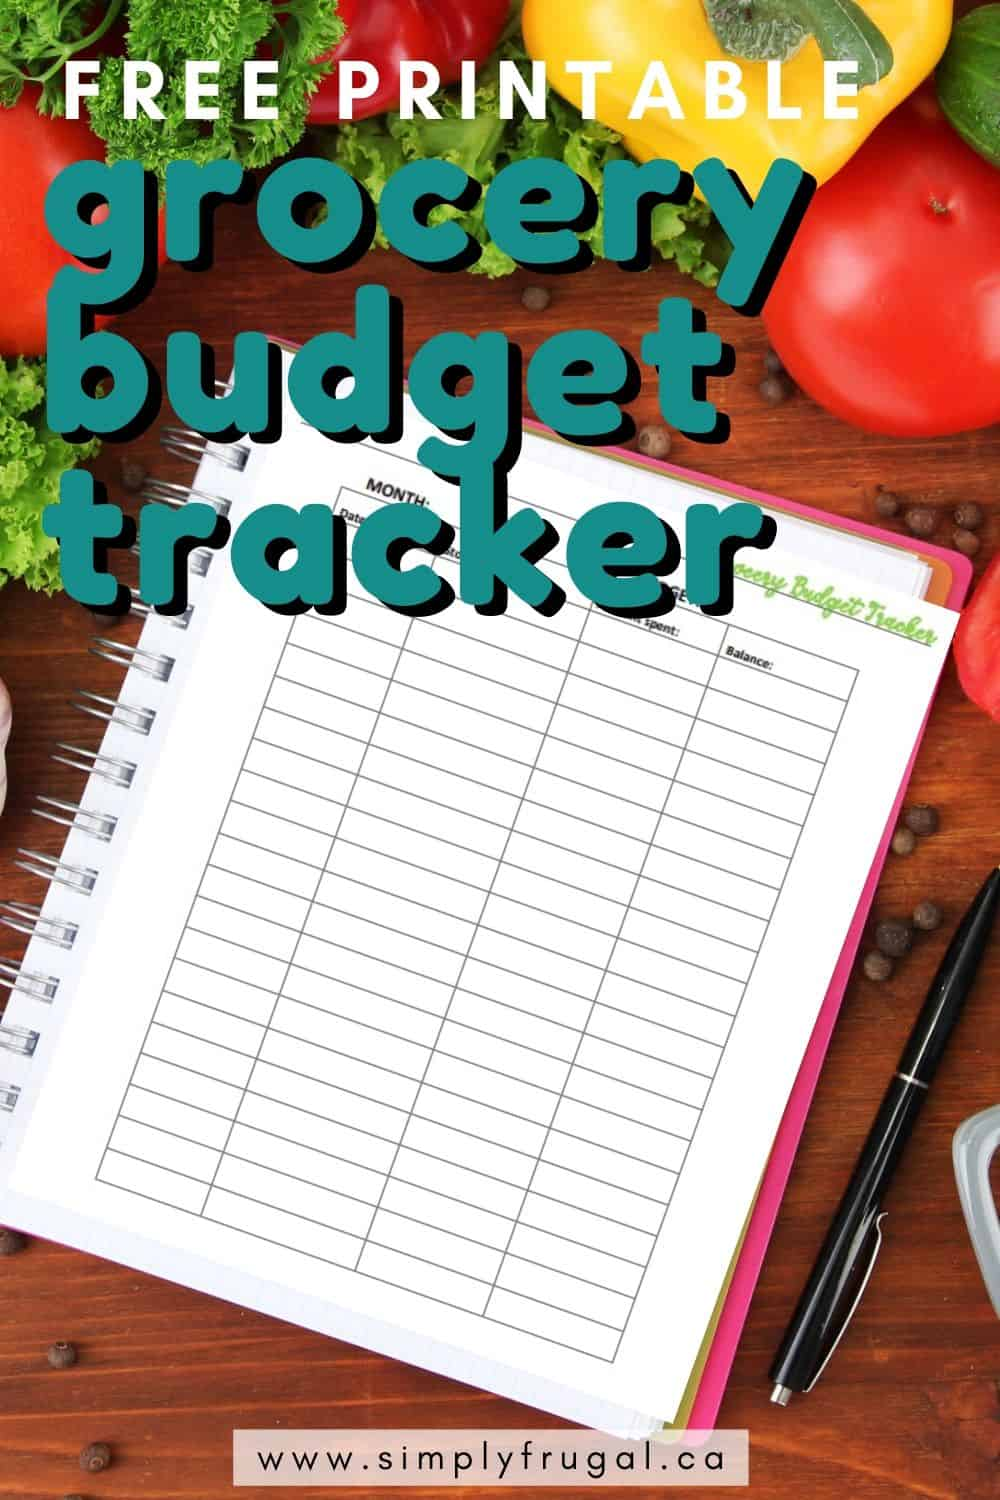 Get your free printable Grocery Budget tracker!